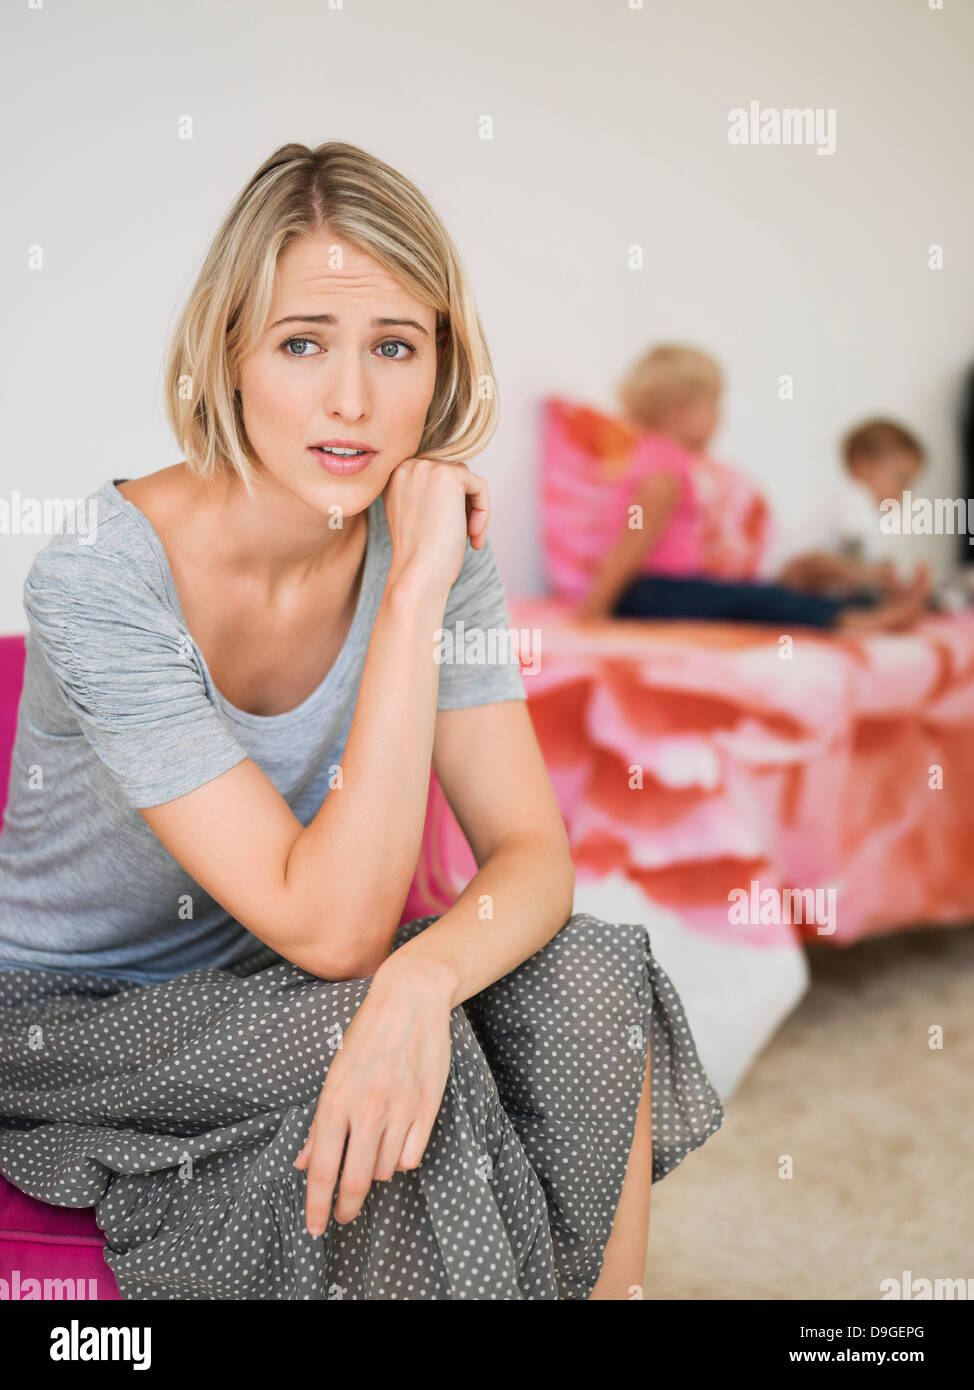 Woman looking worried with her children in the background - Stock Image